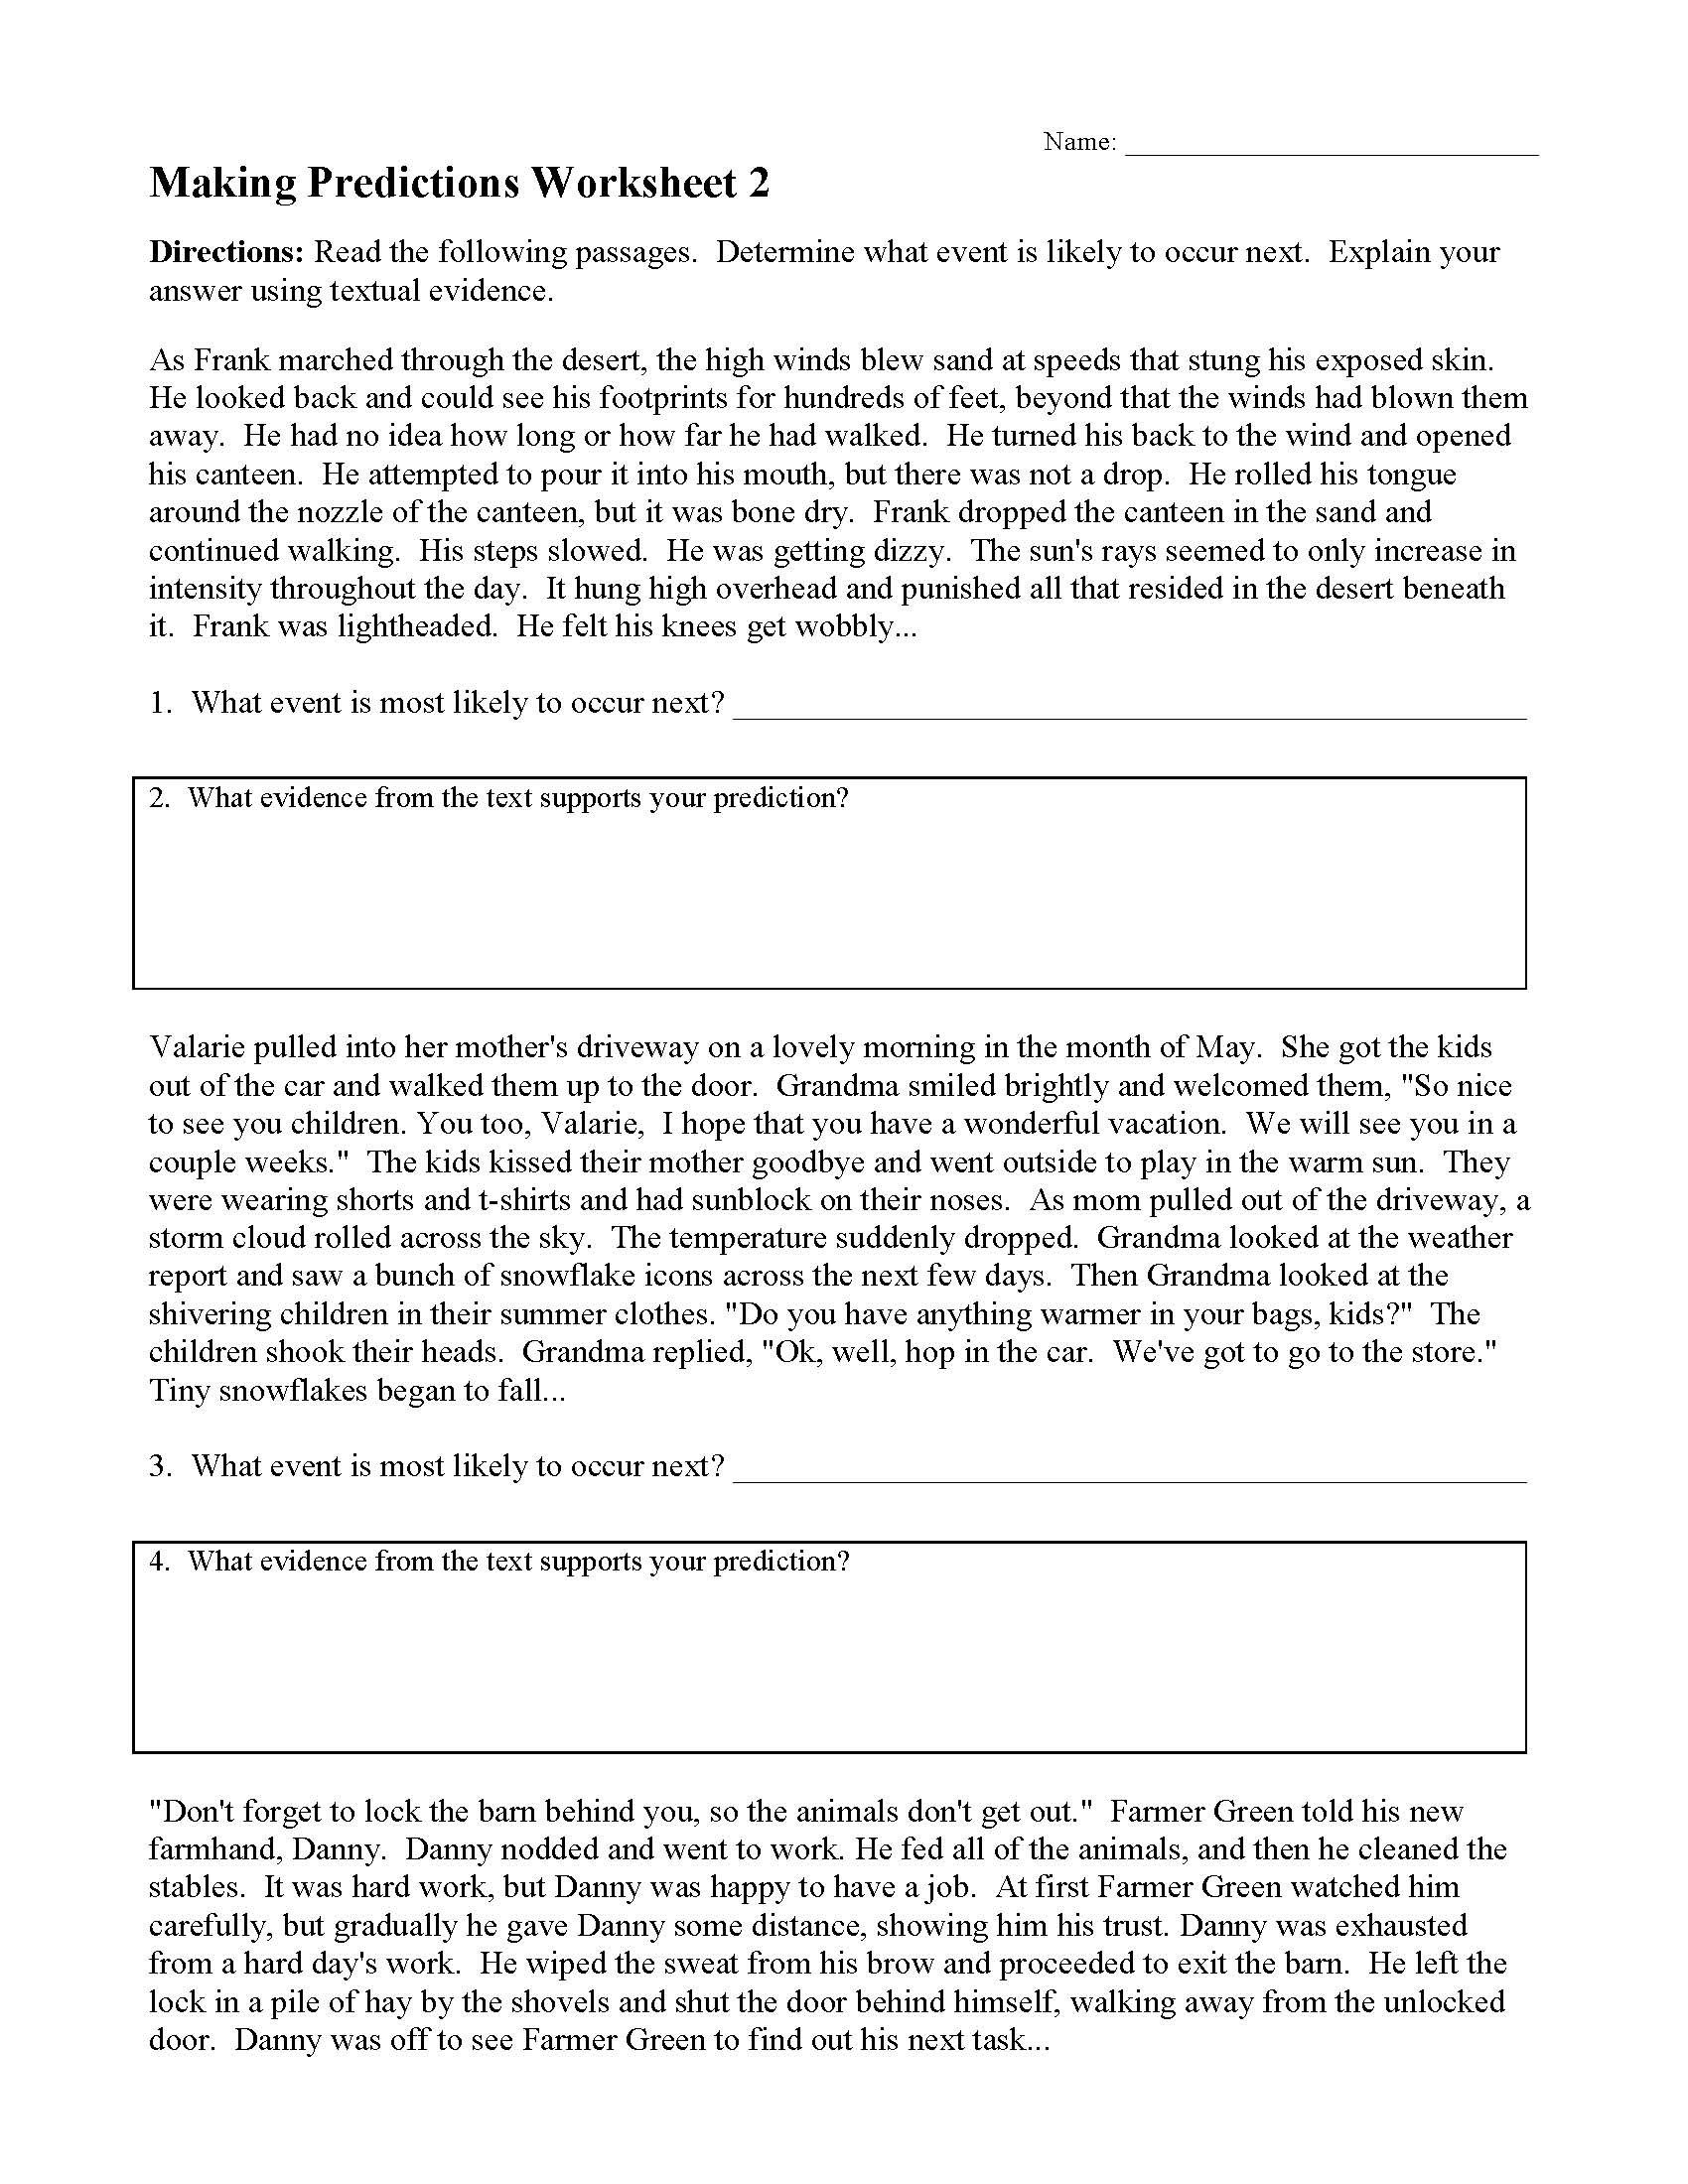 Prediction Worksheets for 3rd Grade Making Predictions Worksheets and Lessons